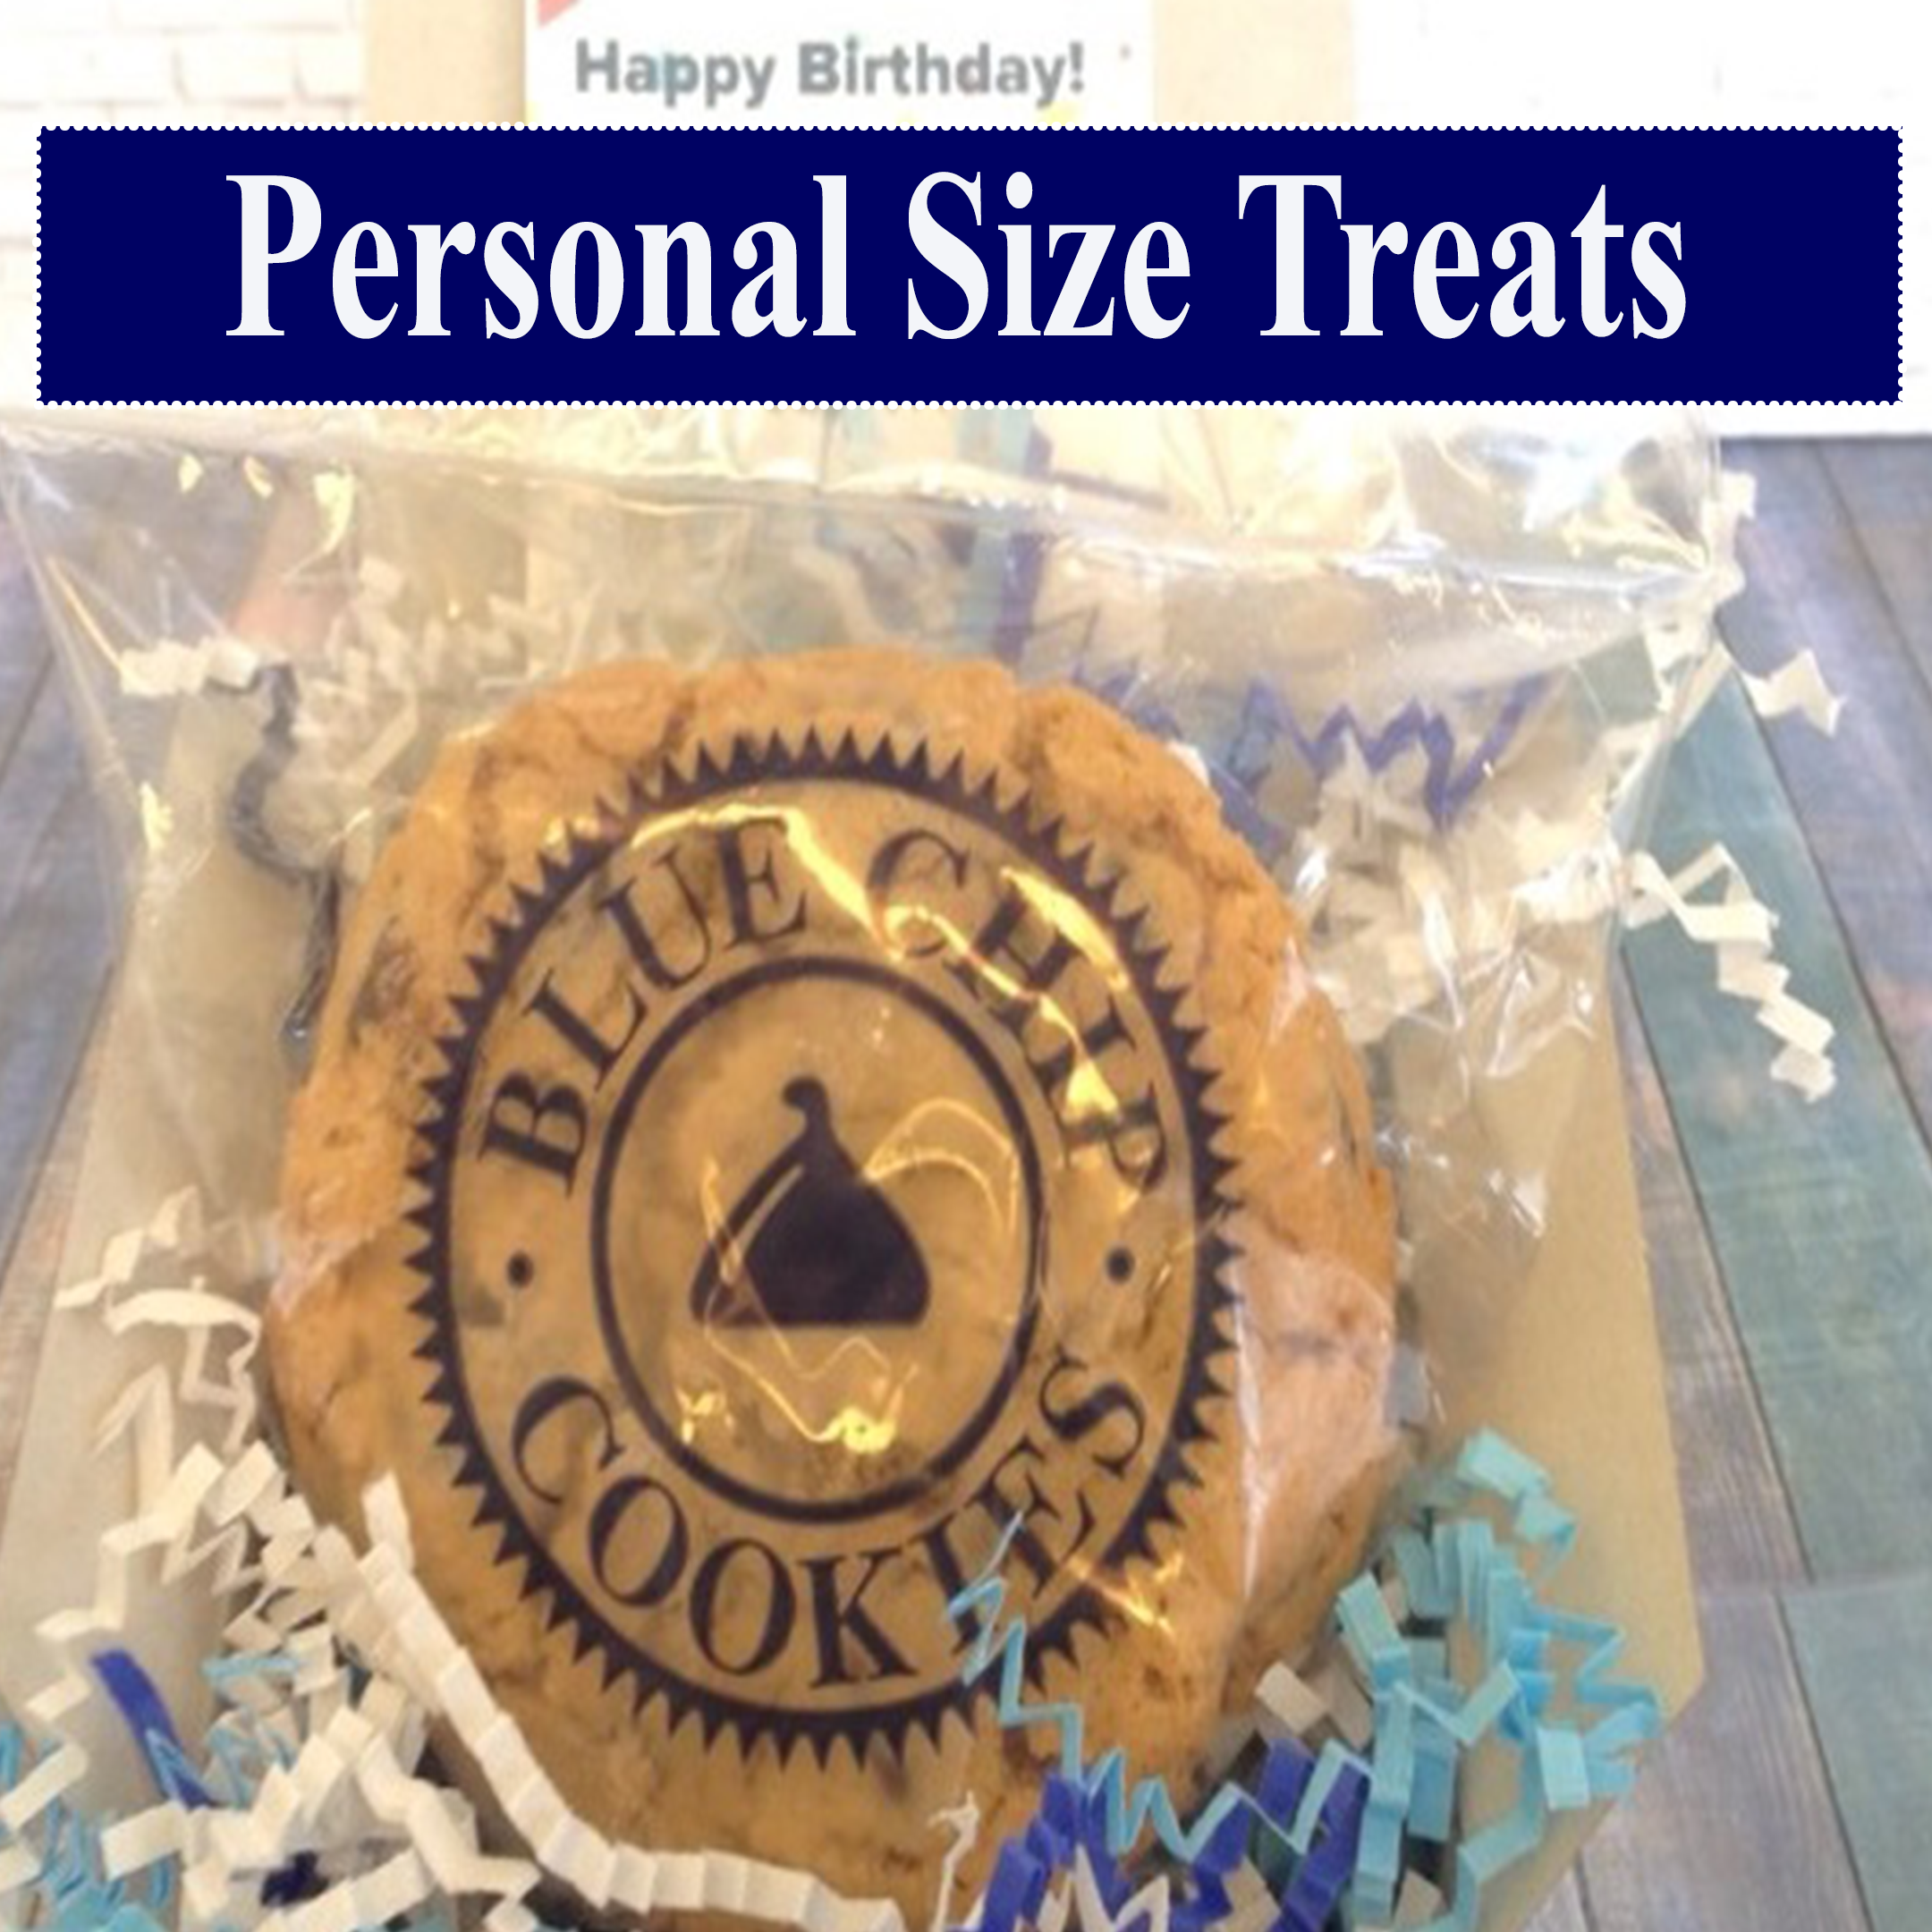 Our Clients Love The 2 Pack Of Cookies We Send For Their Birthday You Are Best Business Cookie Gifts Shipped Thanks Making Sure It Gets There On